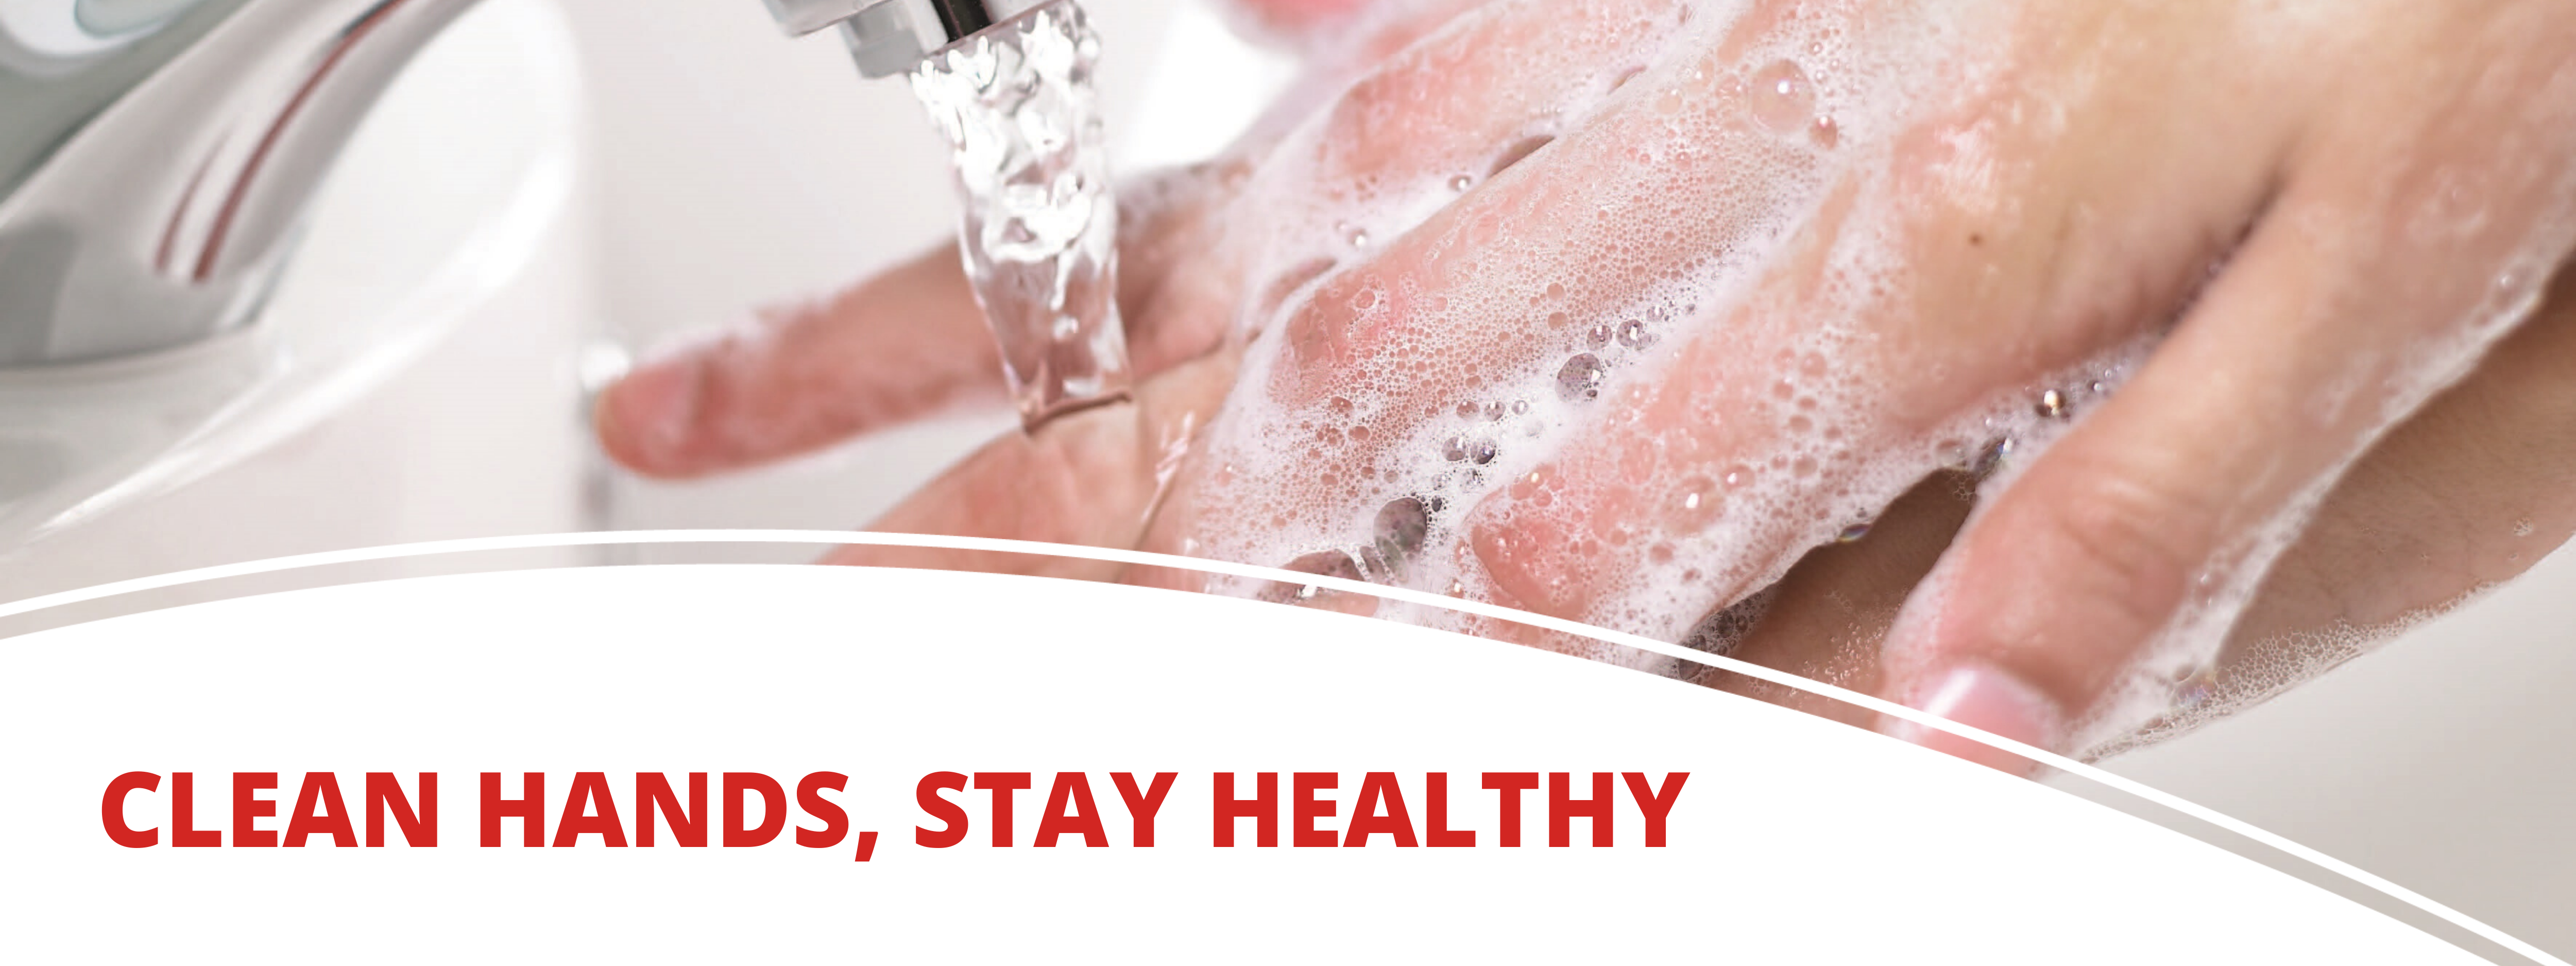 Handwashing Infection Prevention - Banner-1